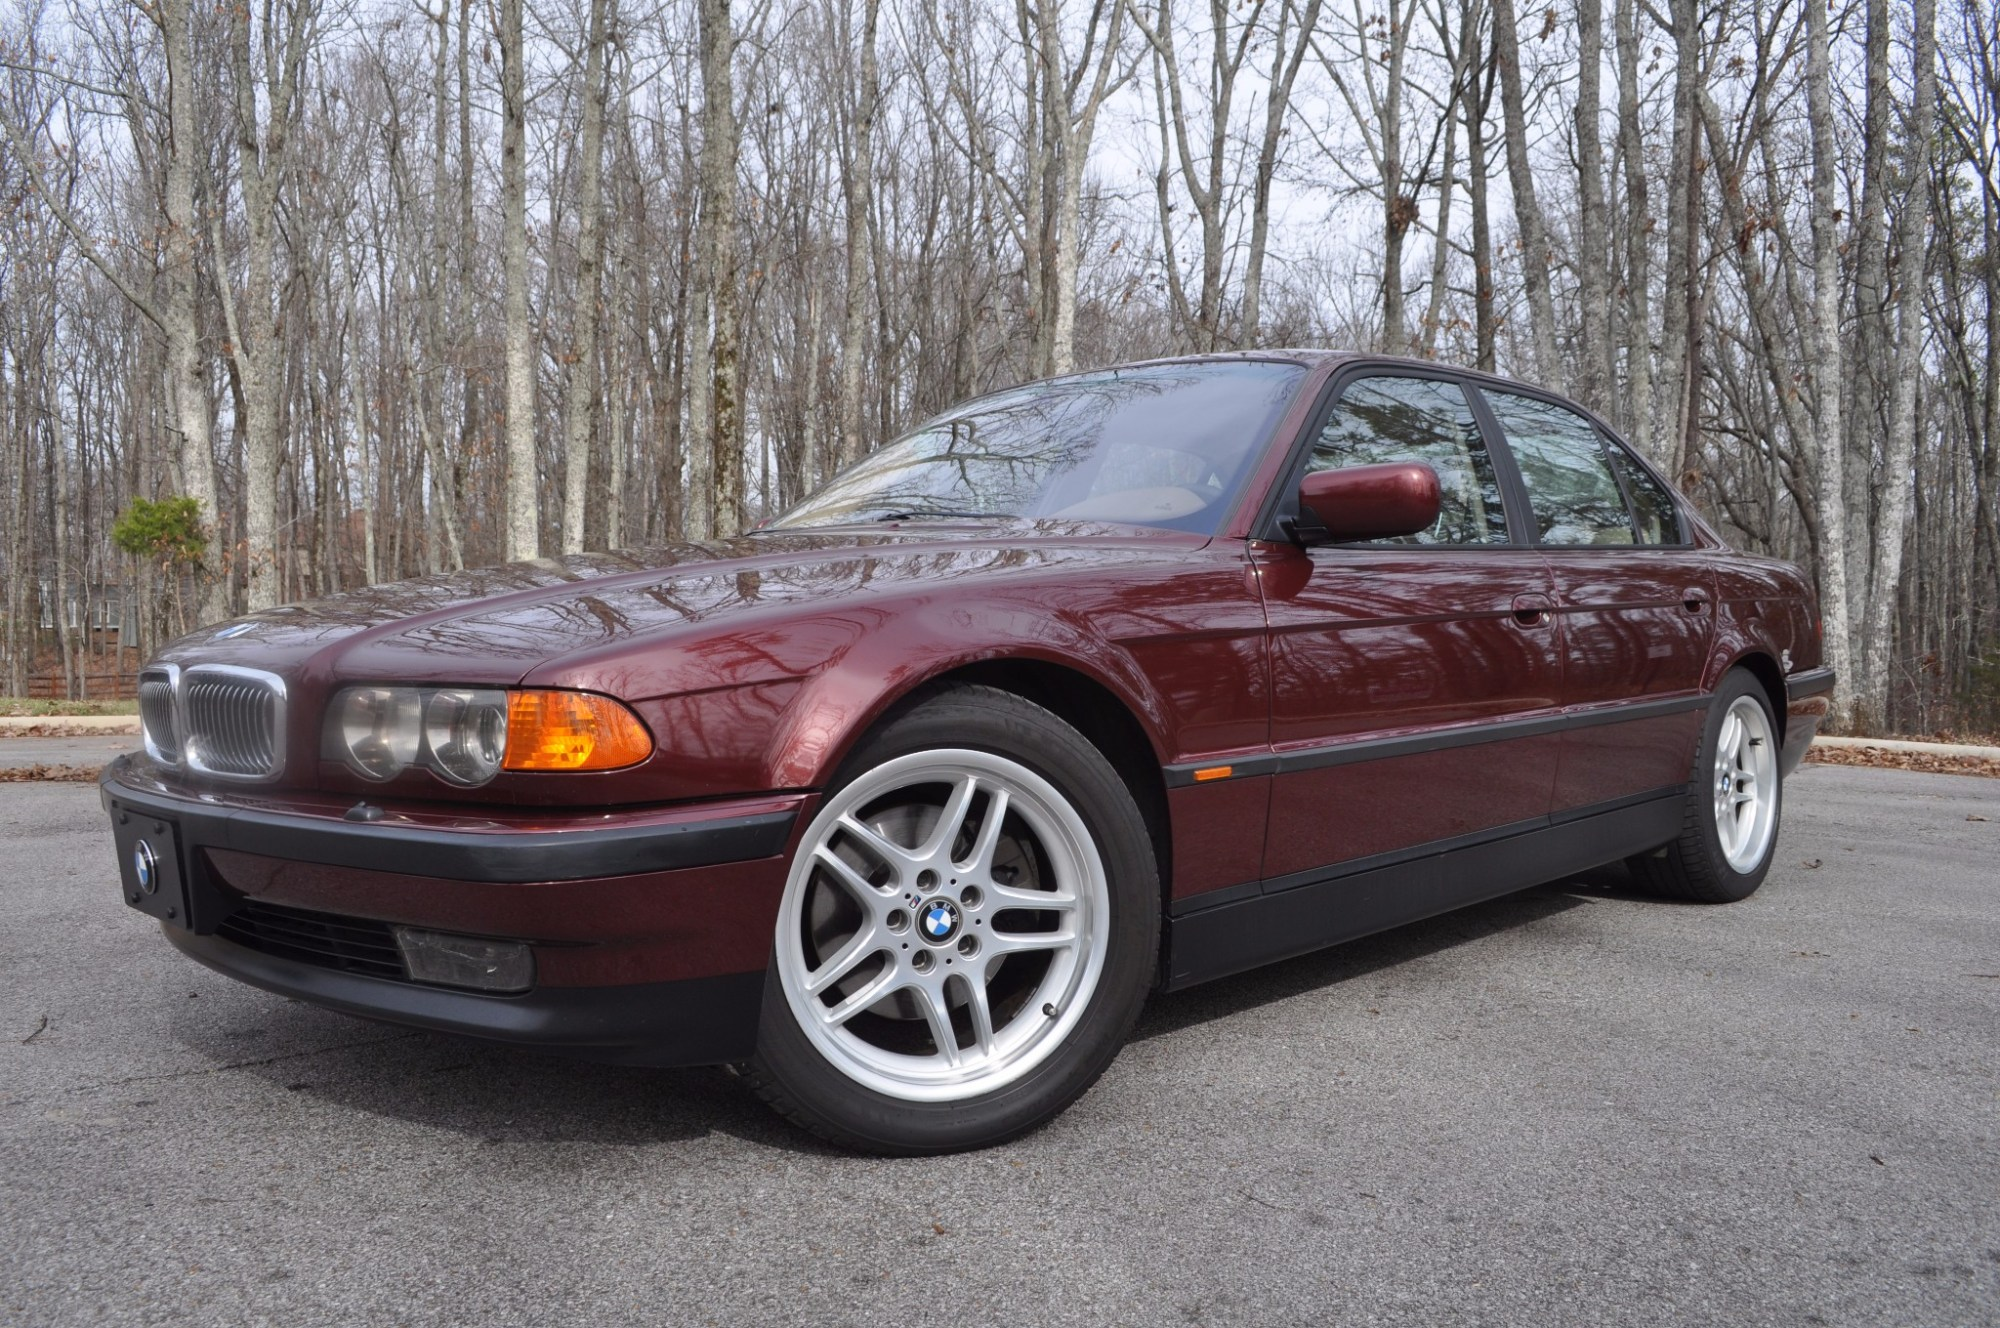 hight resolution of one owner 2000 bmw 740i sport for sale on bat auctions sold for 6 800 on january 25 2017 lot 3 079 bring a trailer